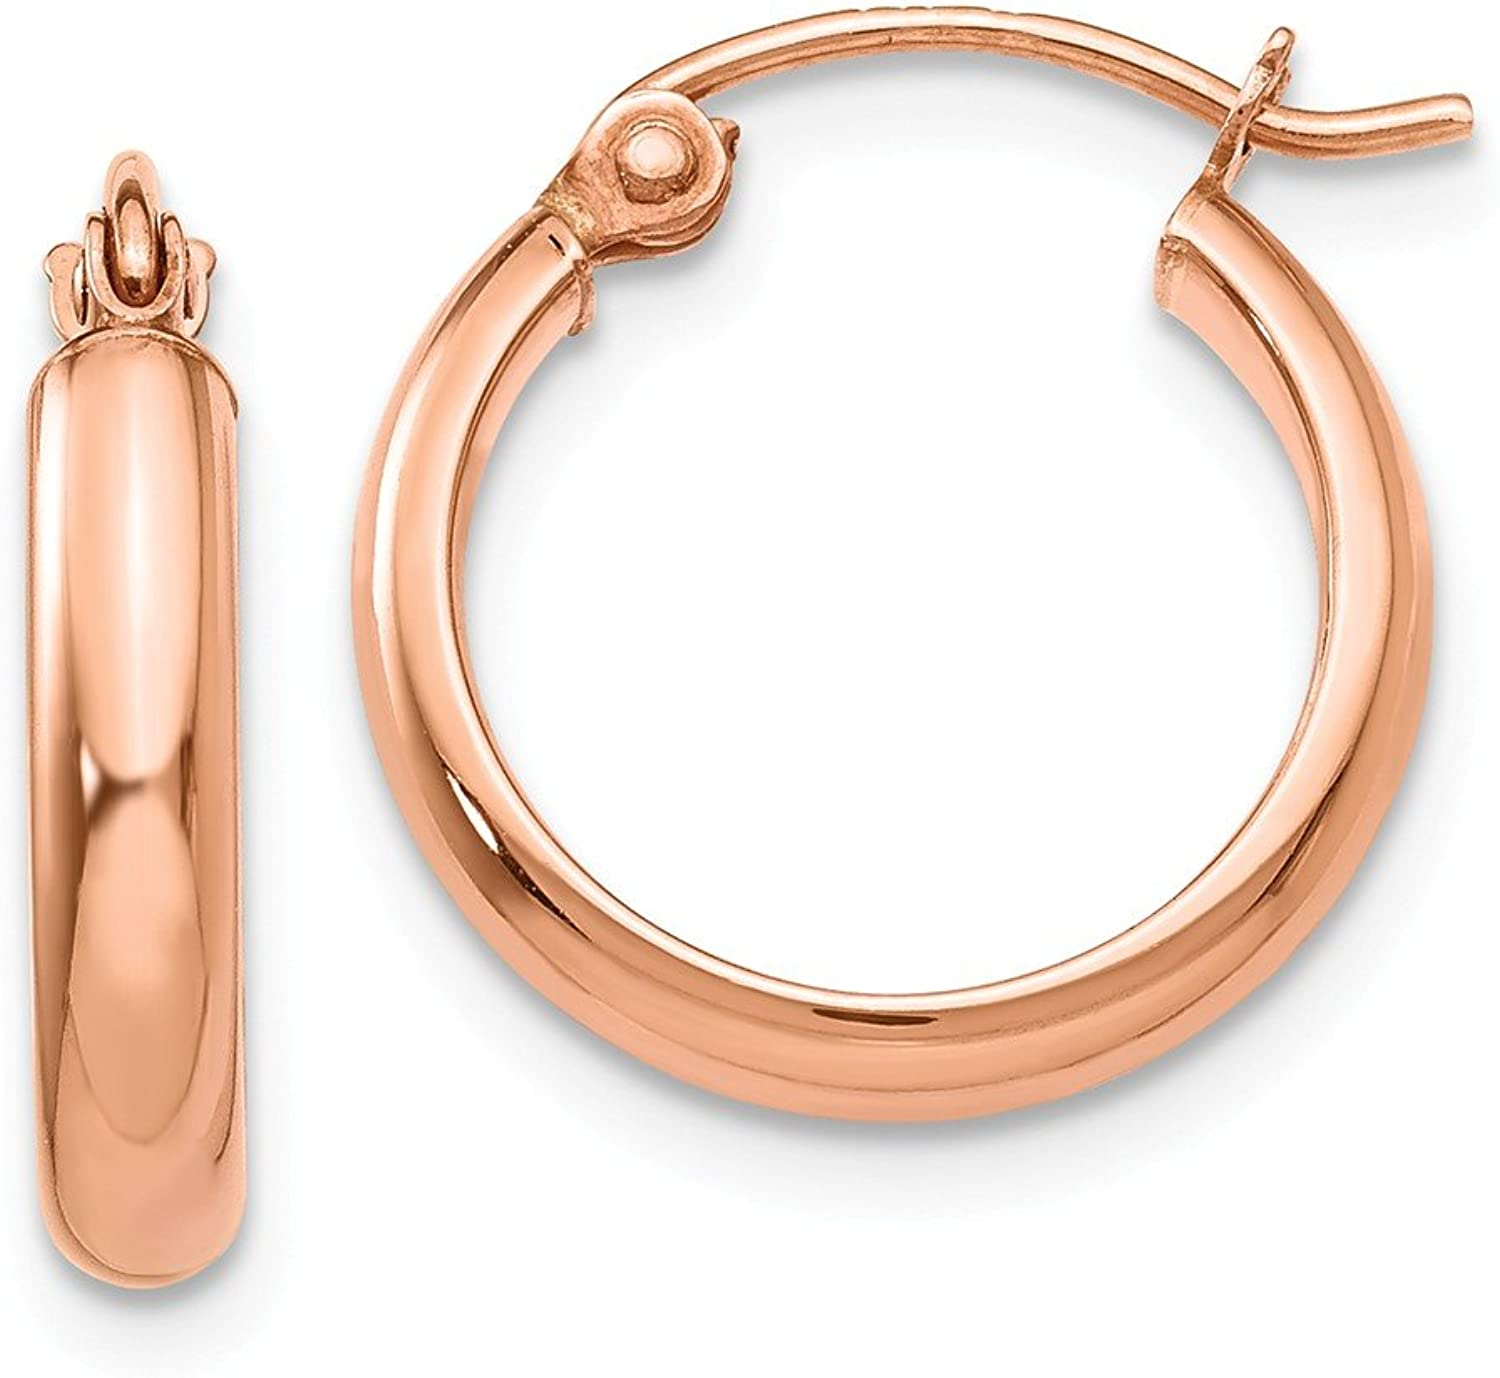 Beautiful pink gold 14K 14k pink gold Hoop Earrings